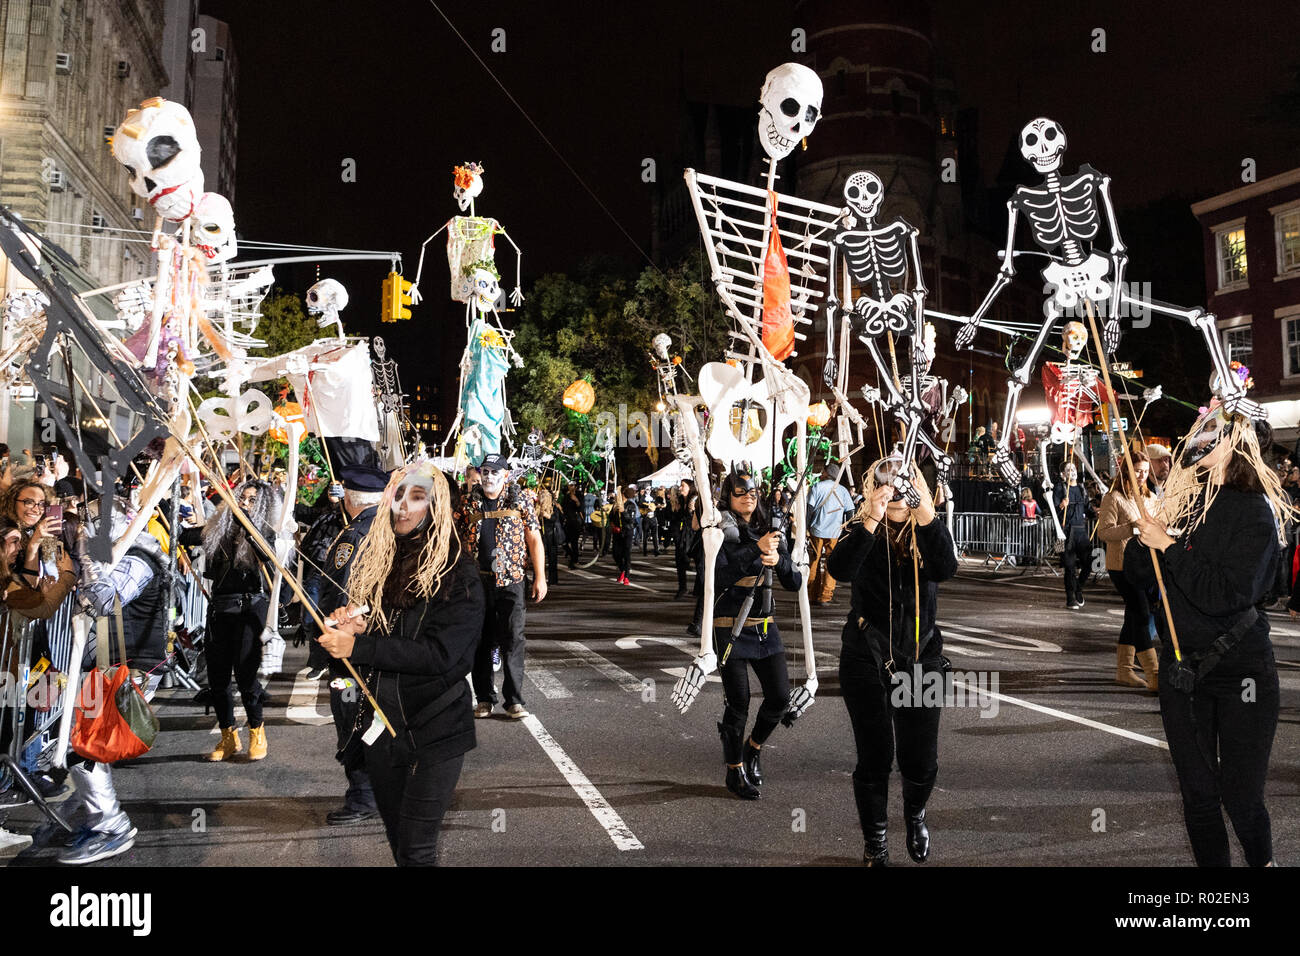 New York City Halloween Parade.Hundreds Of People Participated In The 45th Annual Greenwich Village